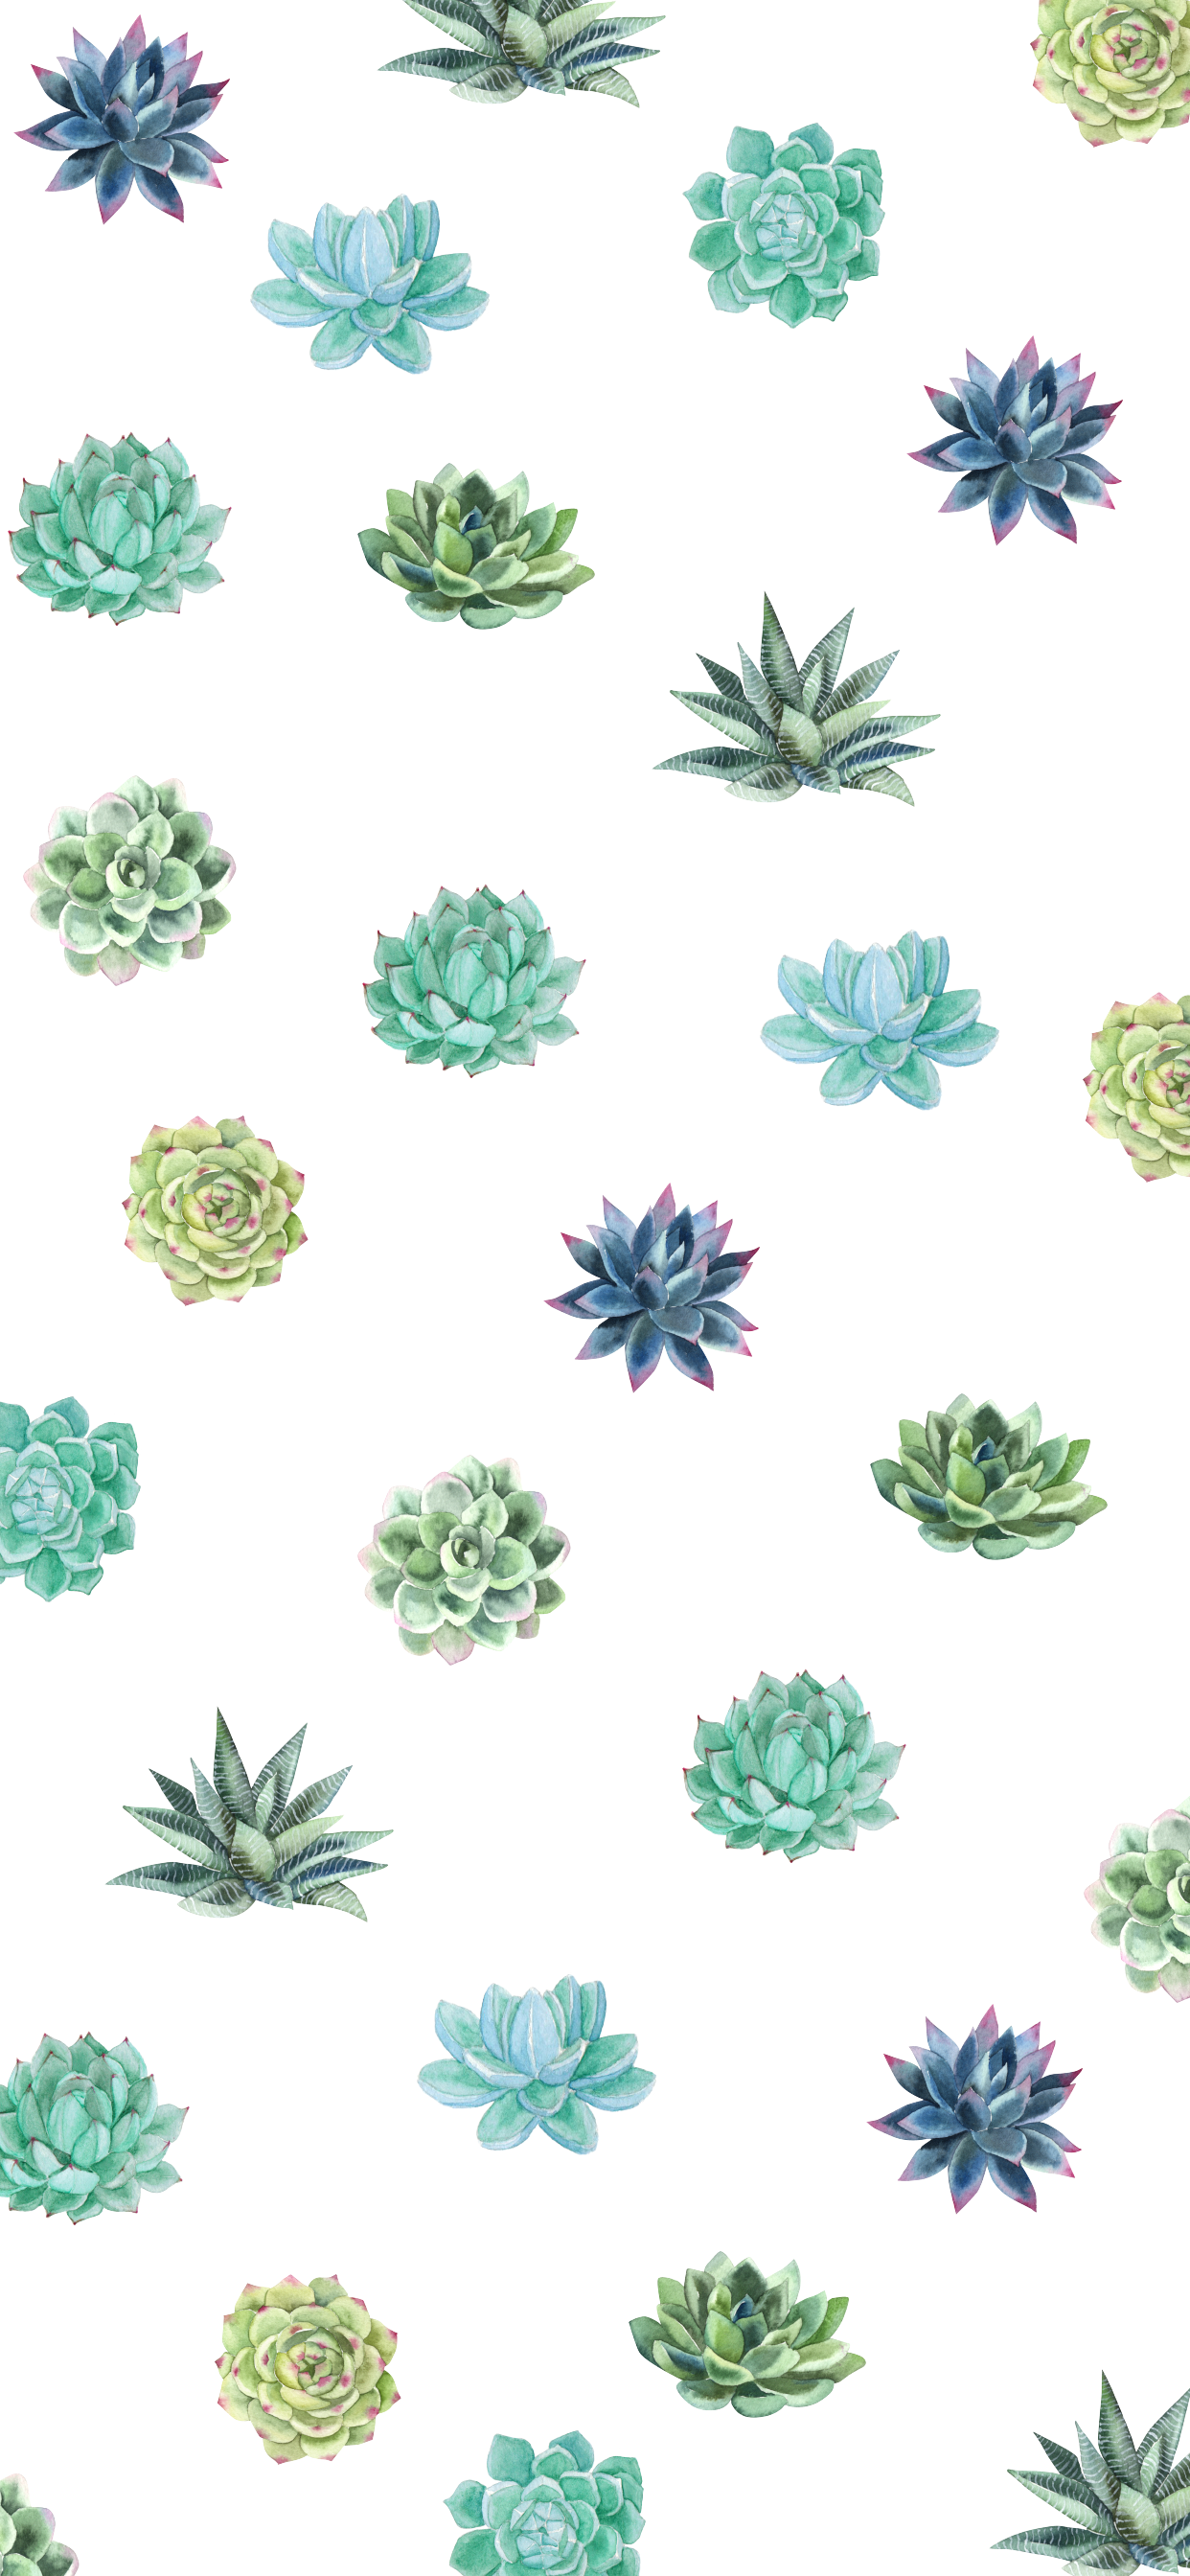 Summer Succulent Iphone Wallpaper Phone Wallpaper Iphone Summer Succulents Wallpaper Iphone Wallpaper Pineapple